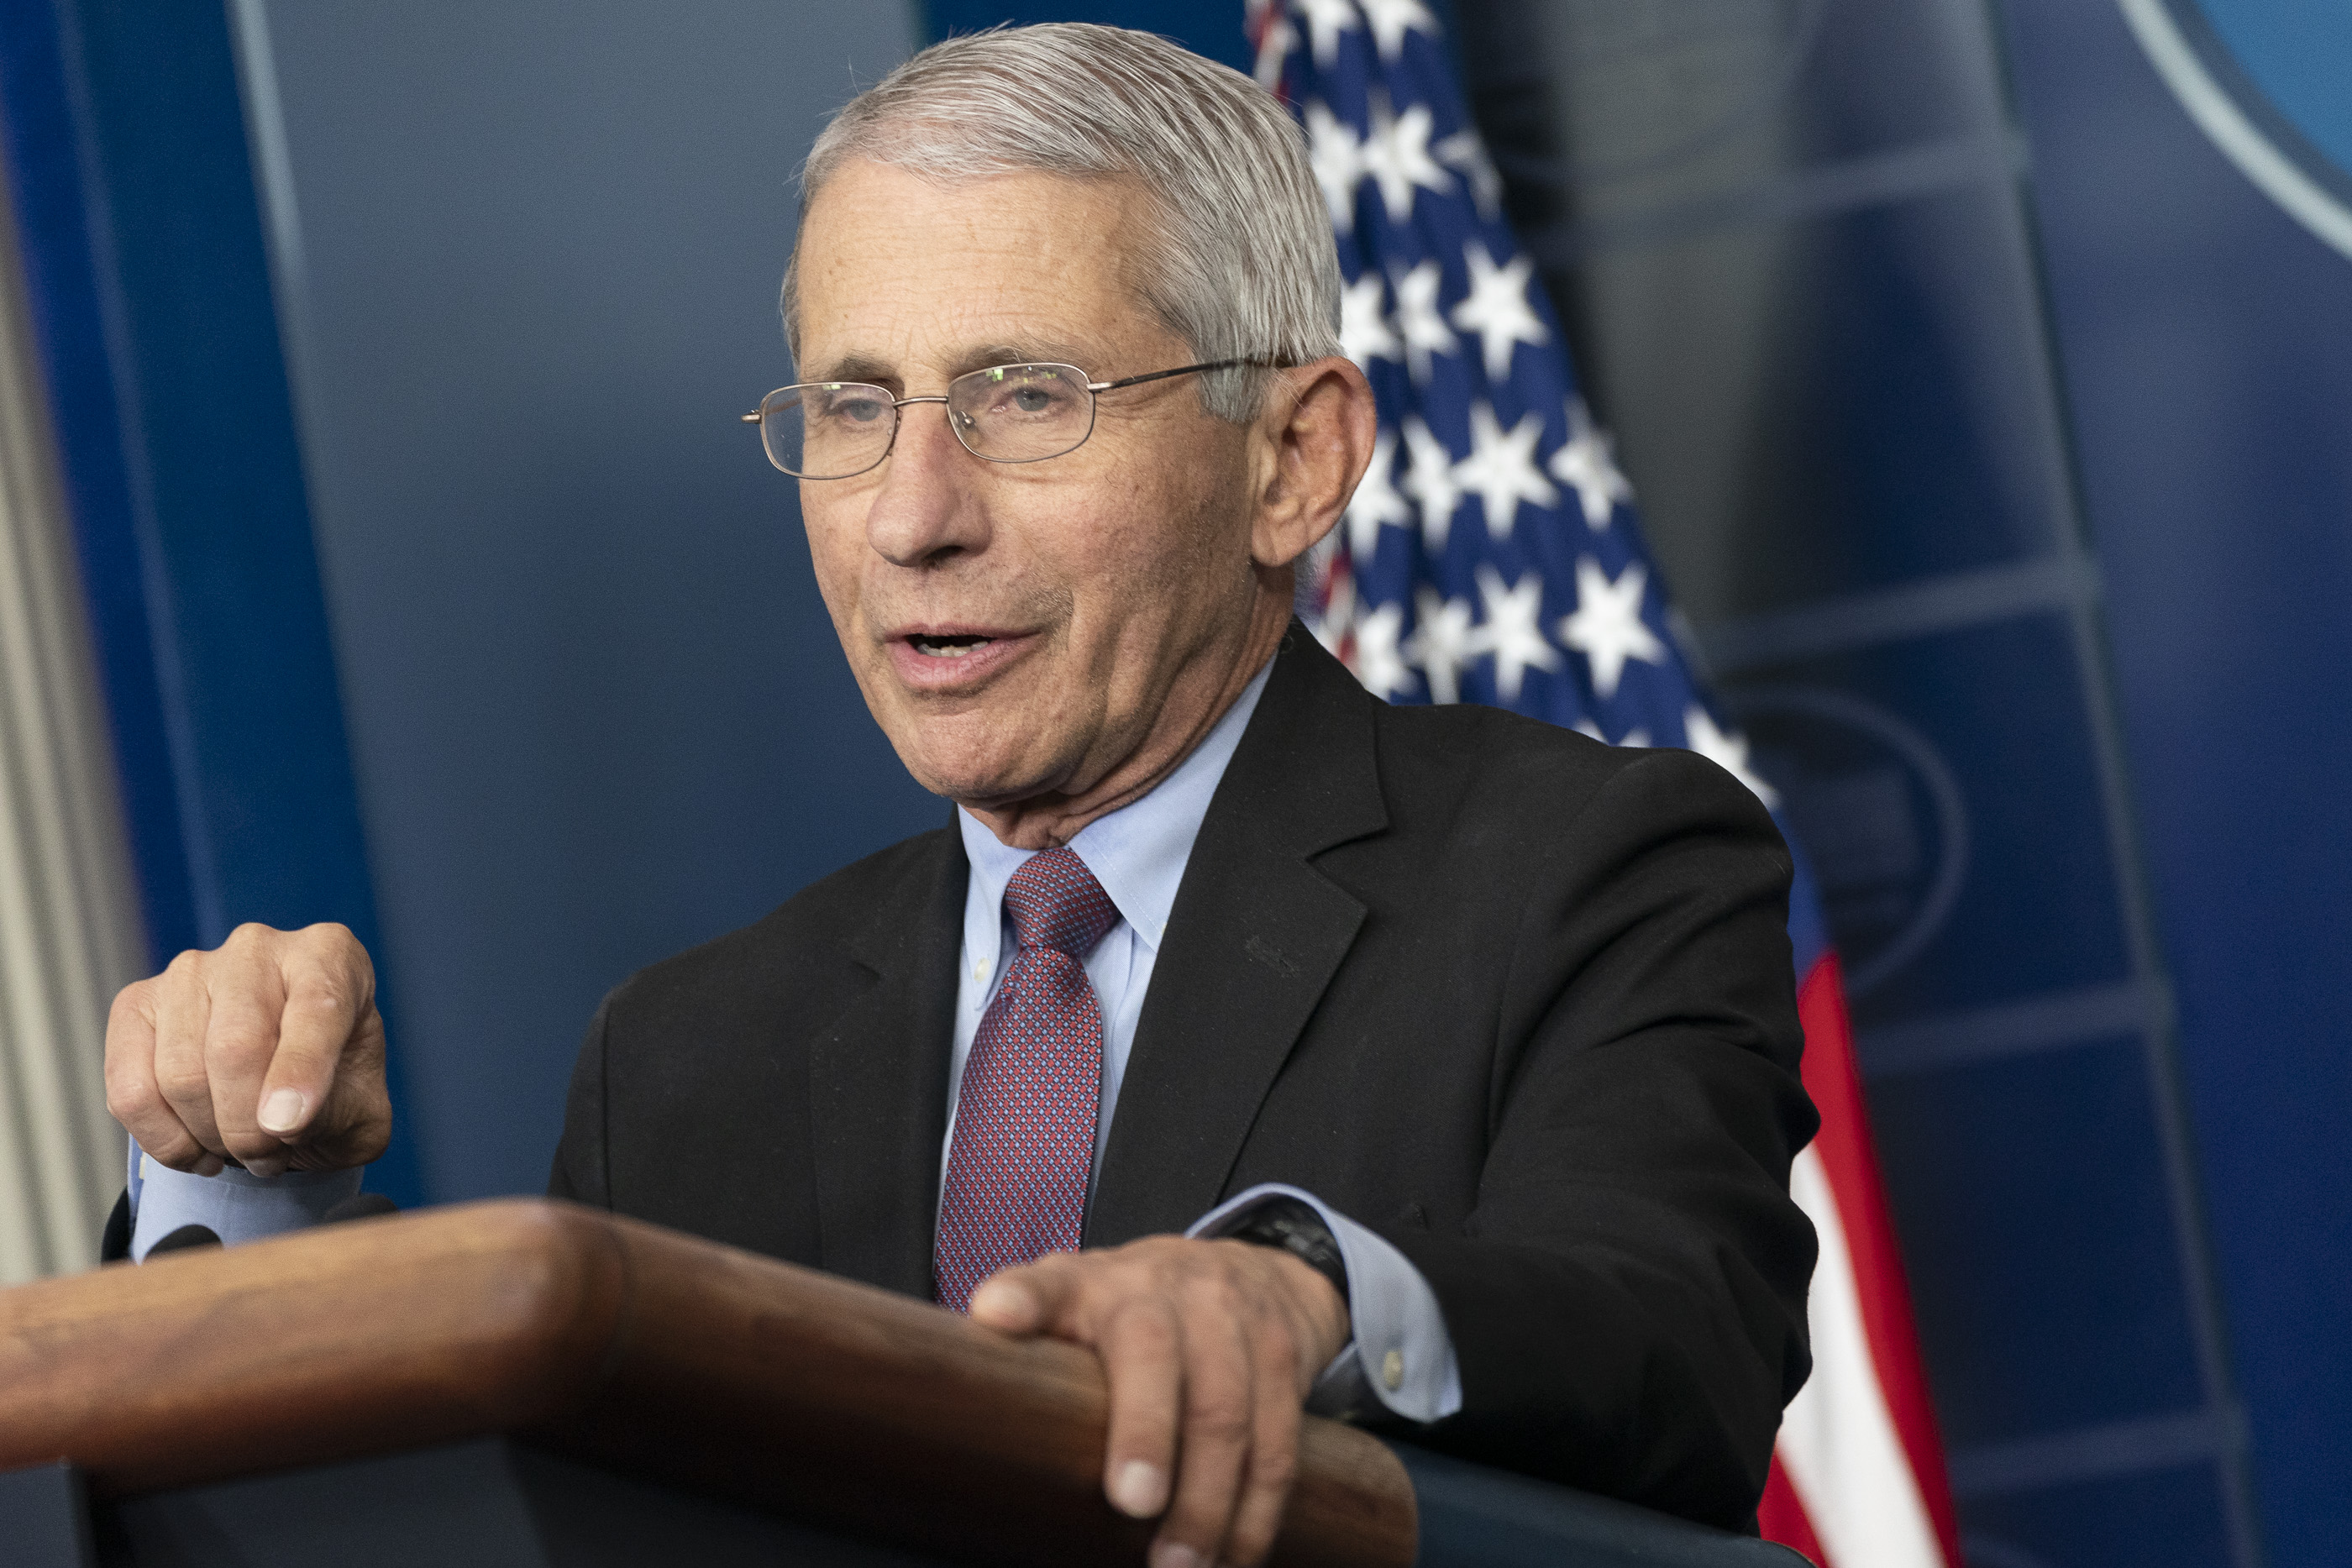 Dr. Anthony Fauci giving a public address